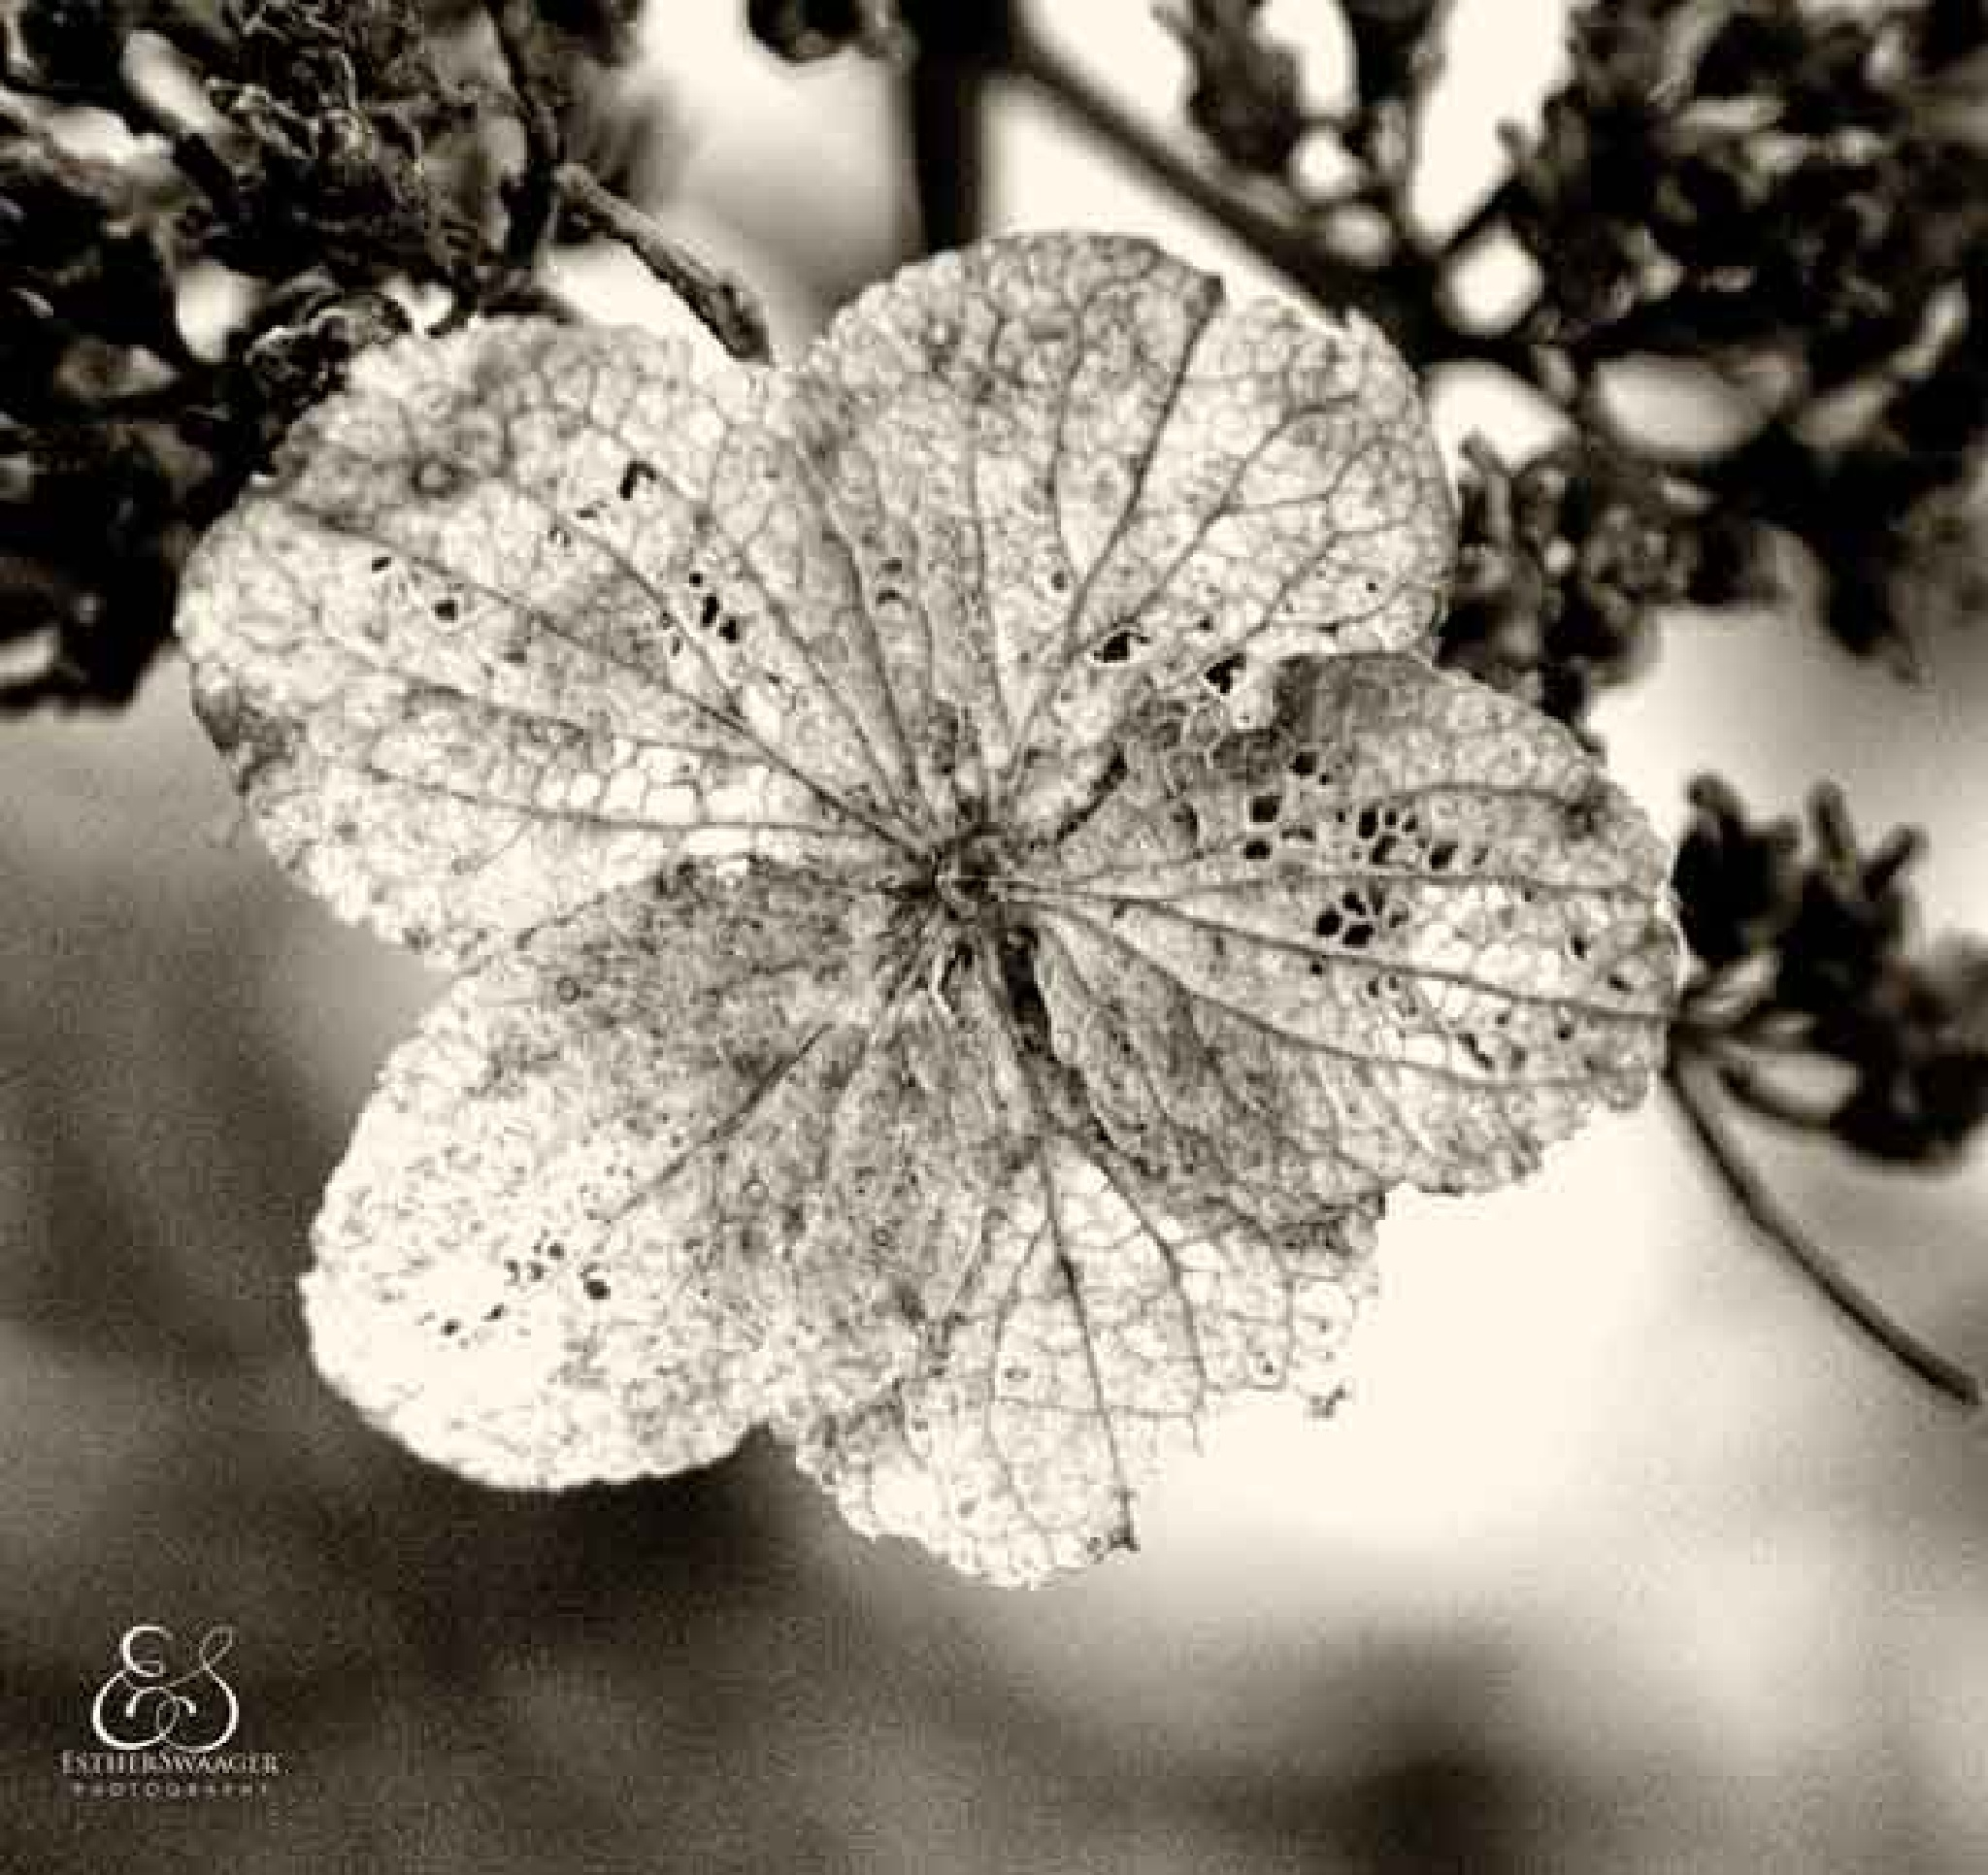 faded glory by Esther Swaager Es Photography